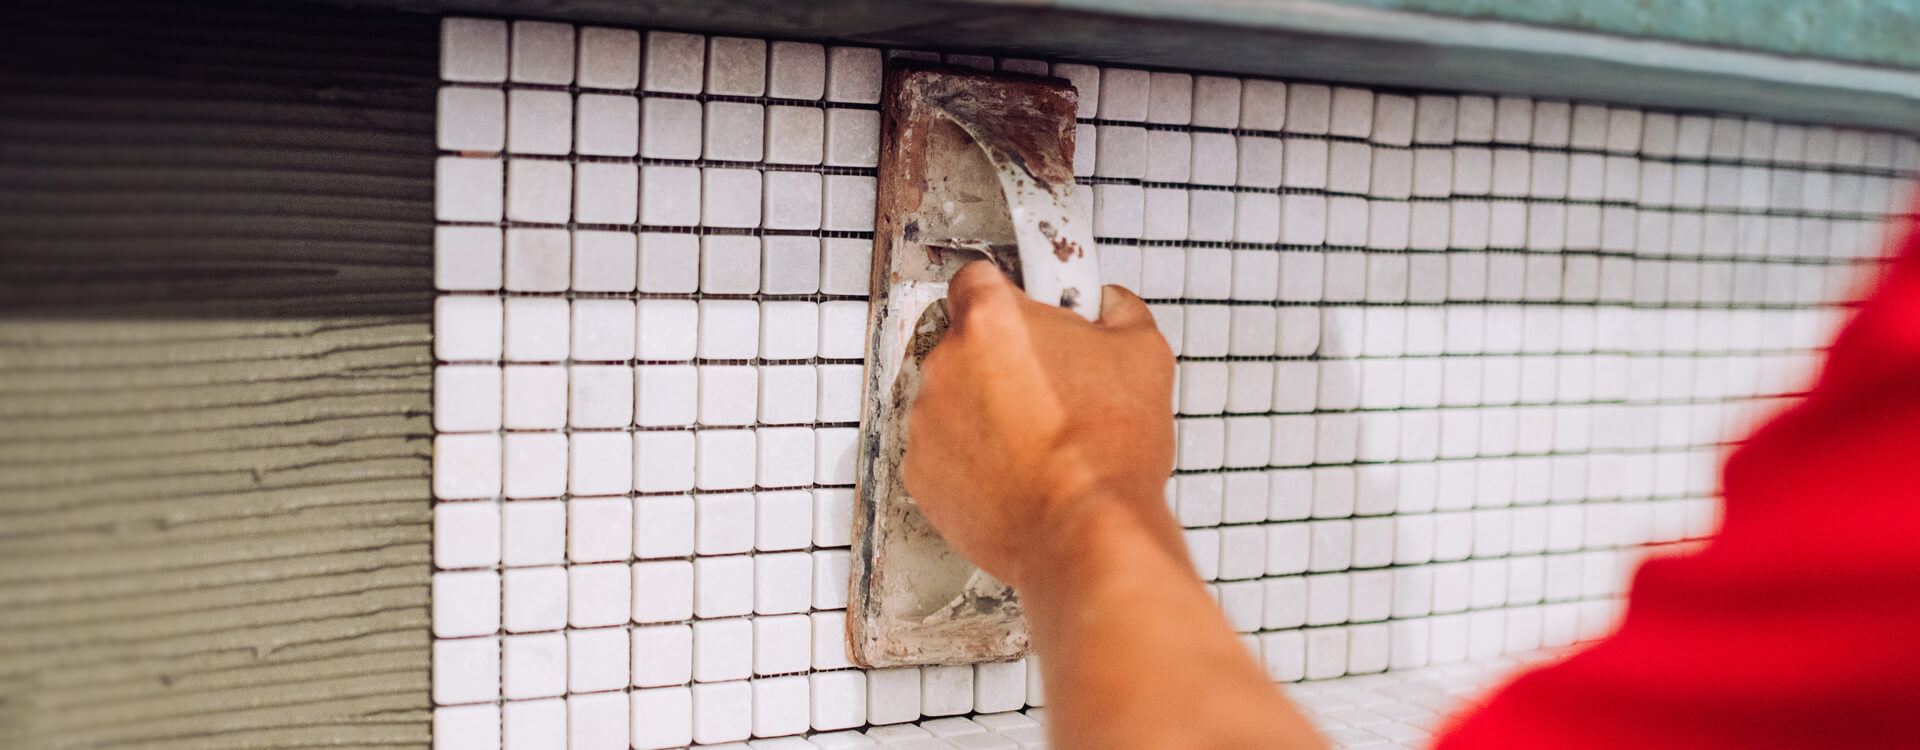 INSTALLING AND MAINTAINING YOUR TILES: 101